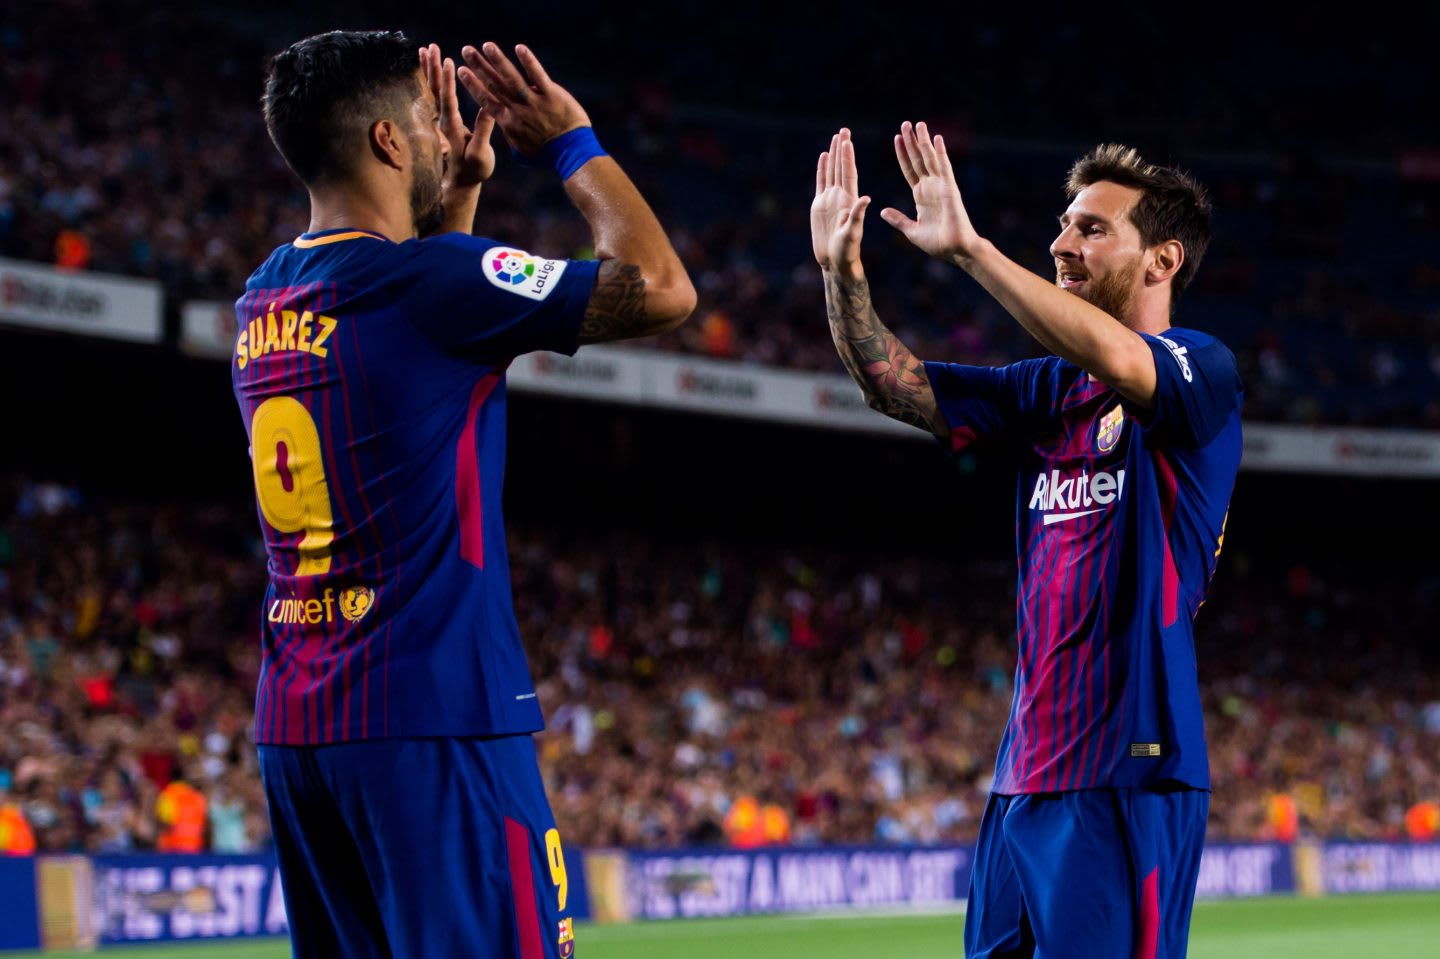 FC Barcelona v Chapecoense_football player_high five